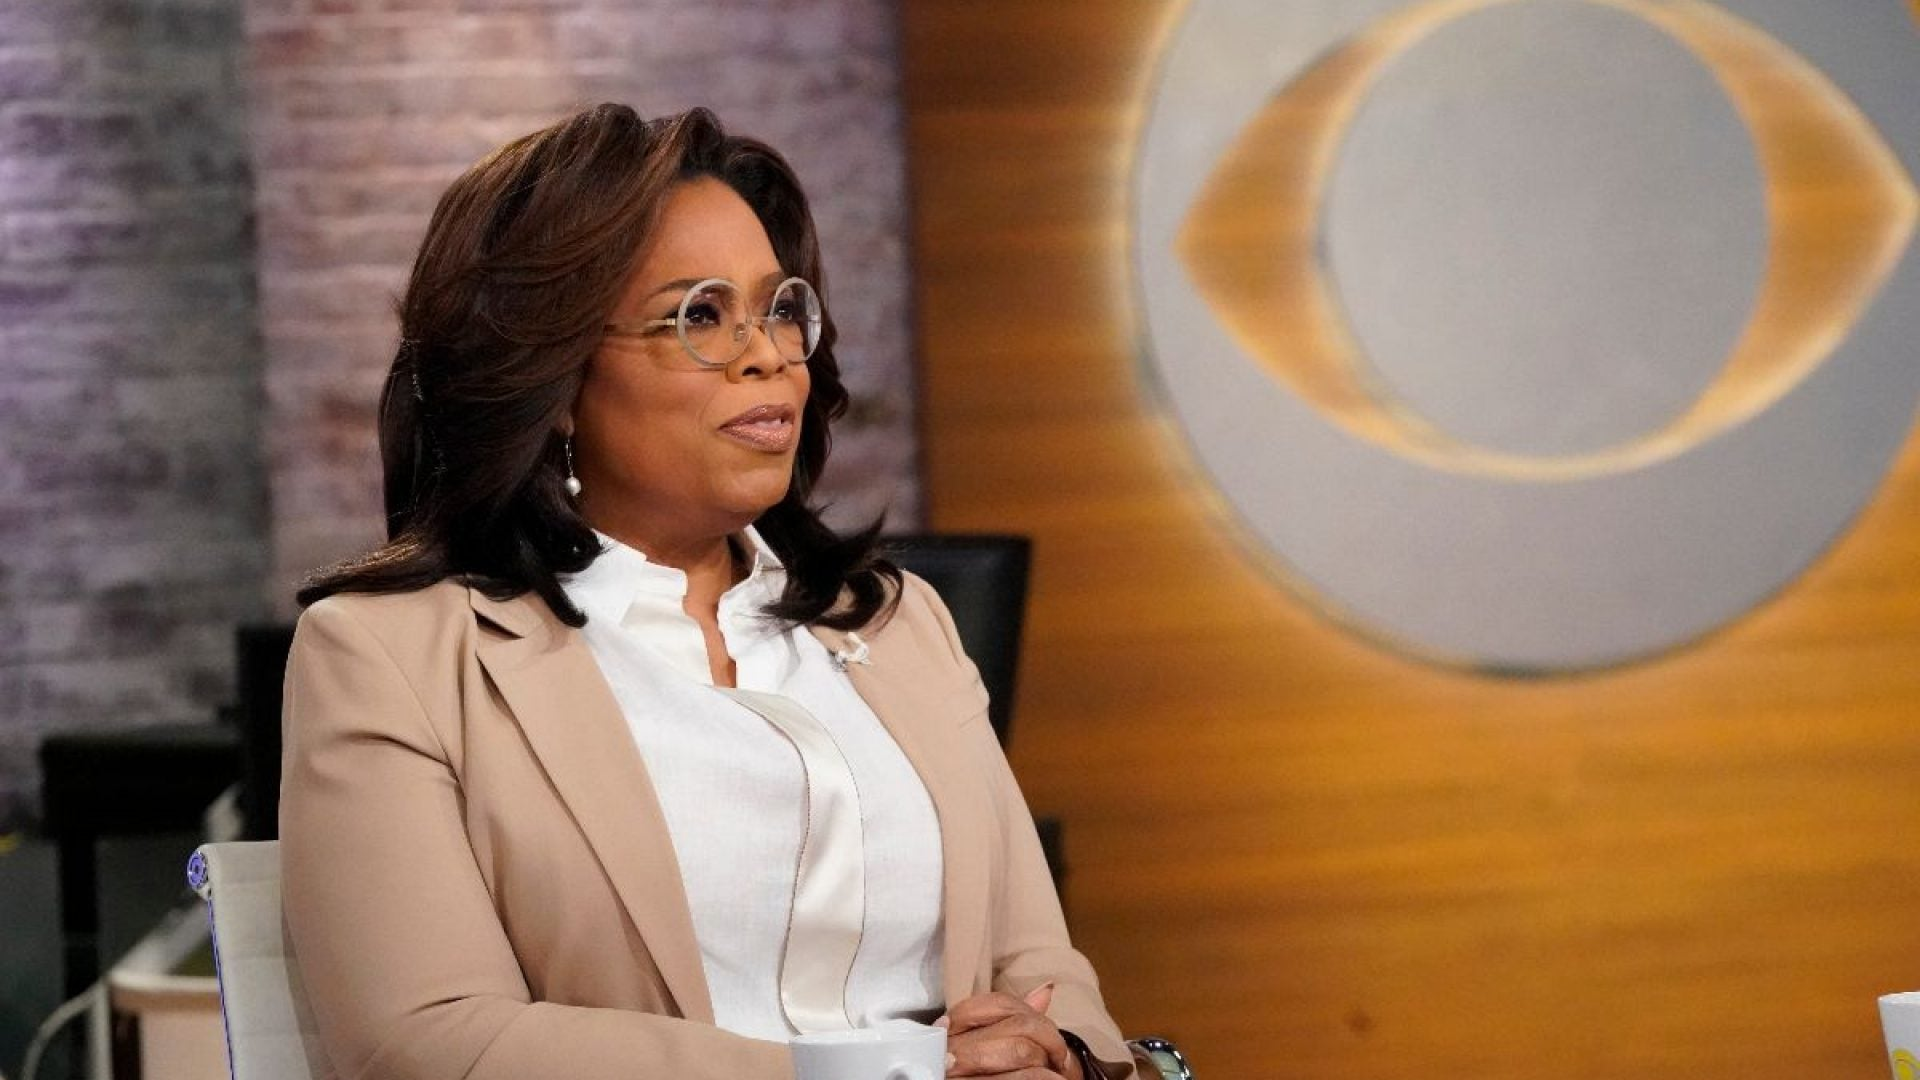 Oprah Winfrey Reveals Why She Left Russell Simmons #MeToo Documentary